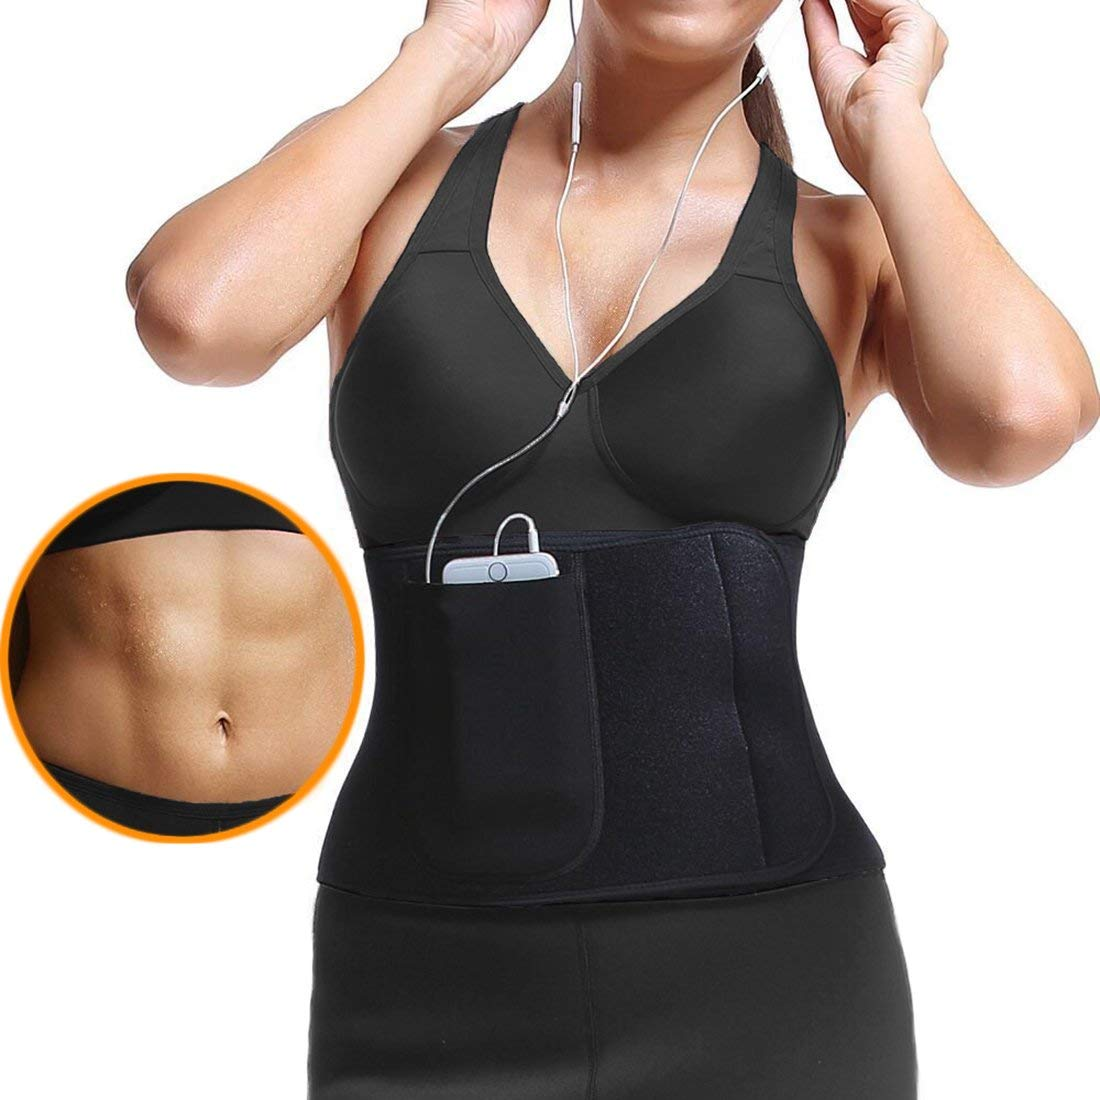 d8b568c15d Get Quotations · JANSION Waist Trimmer Belt with pocket